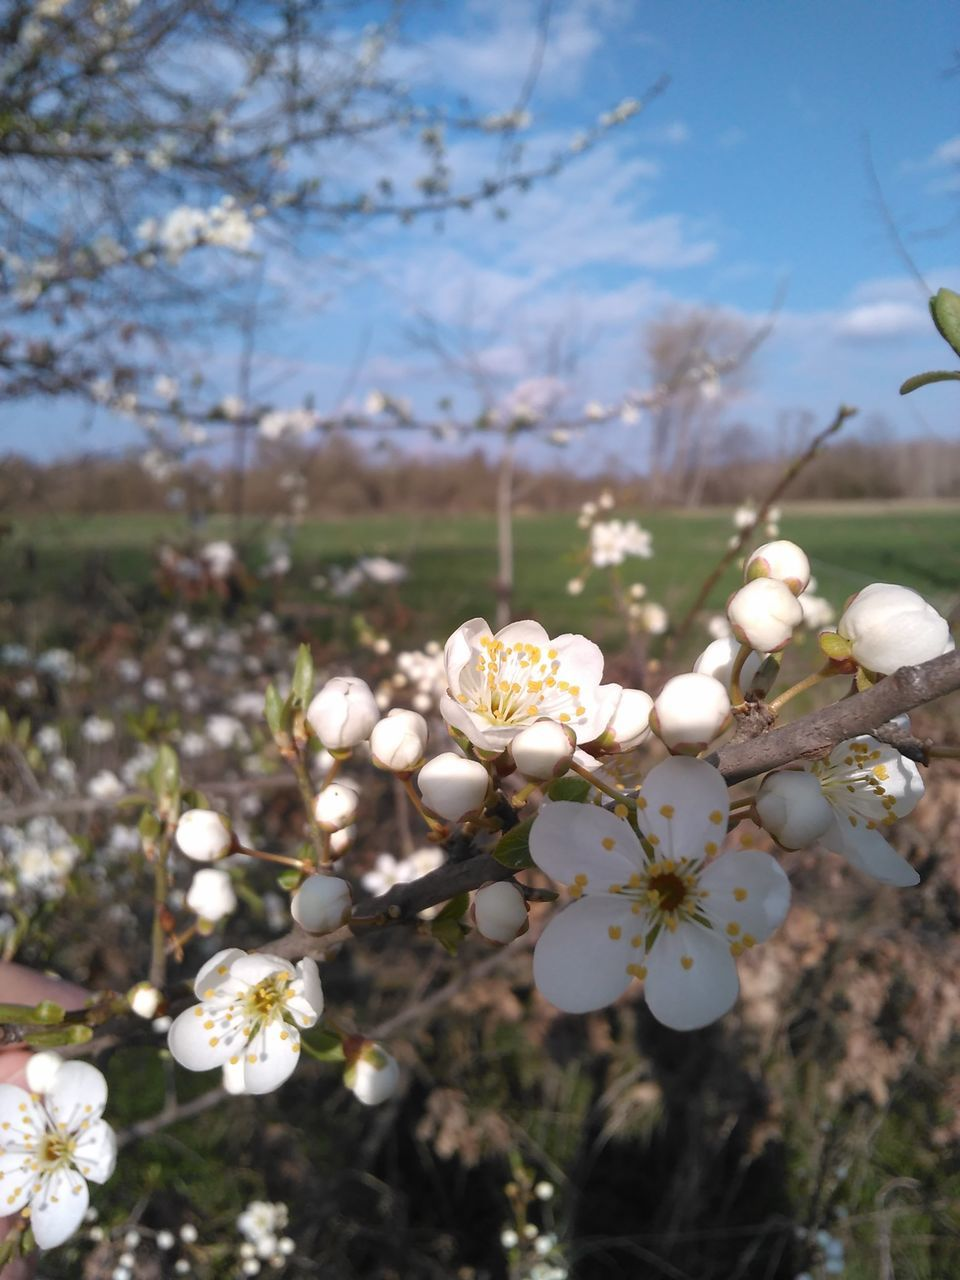 flower, growth, fragility, nature, beauty in nature, blossom, white color, tree, apple blossom, branch, petal, springtime, orchard, no people, freshness, day, blooming, outdoors, plant, flower head, close-up